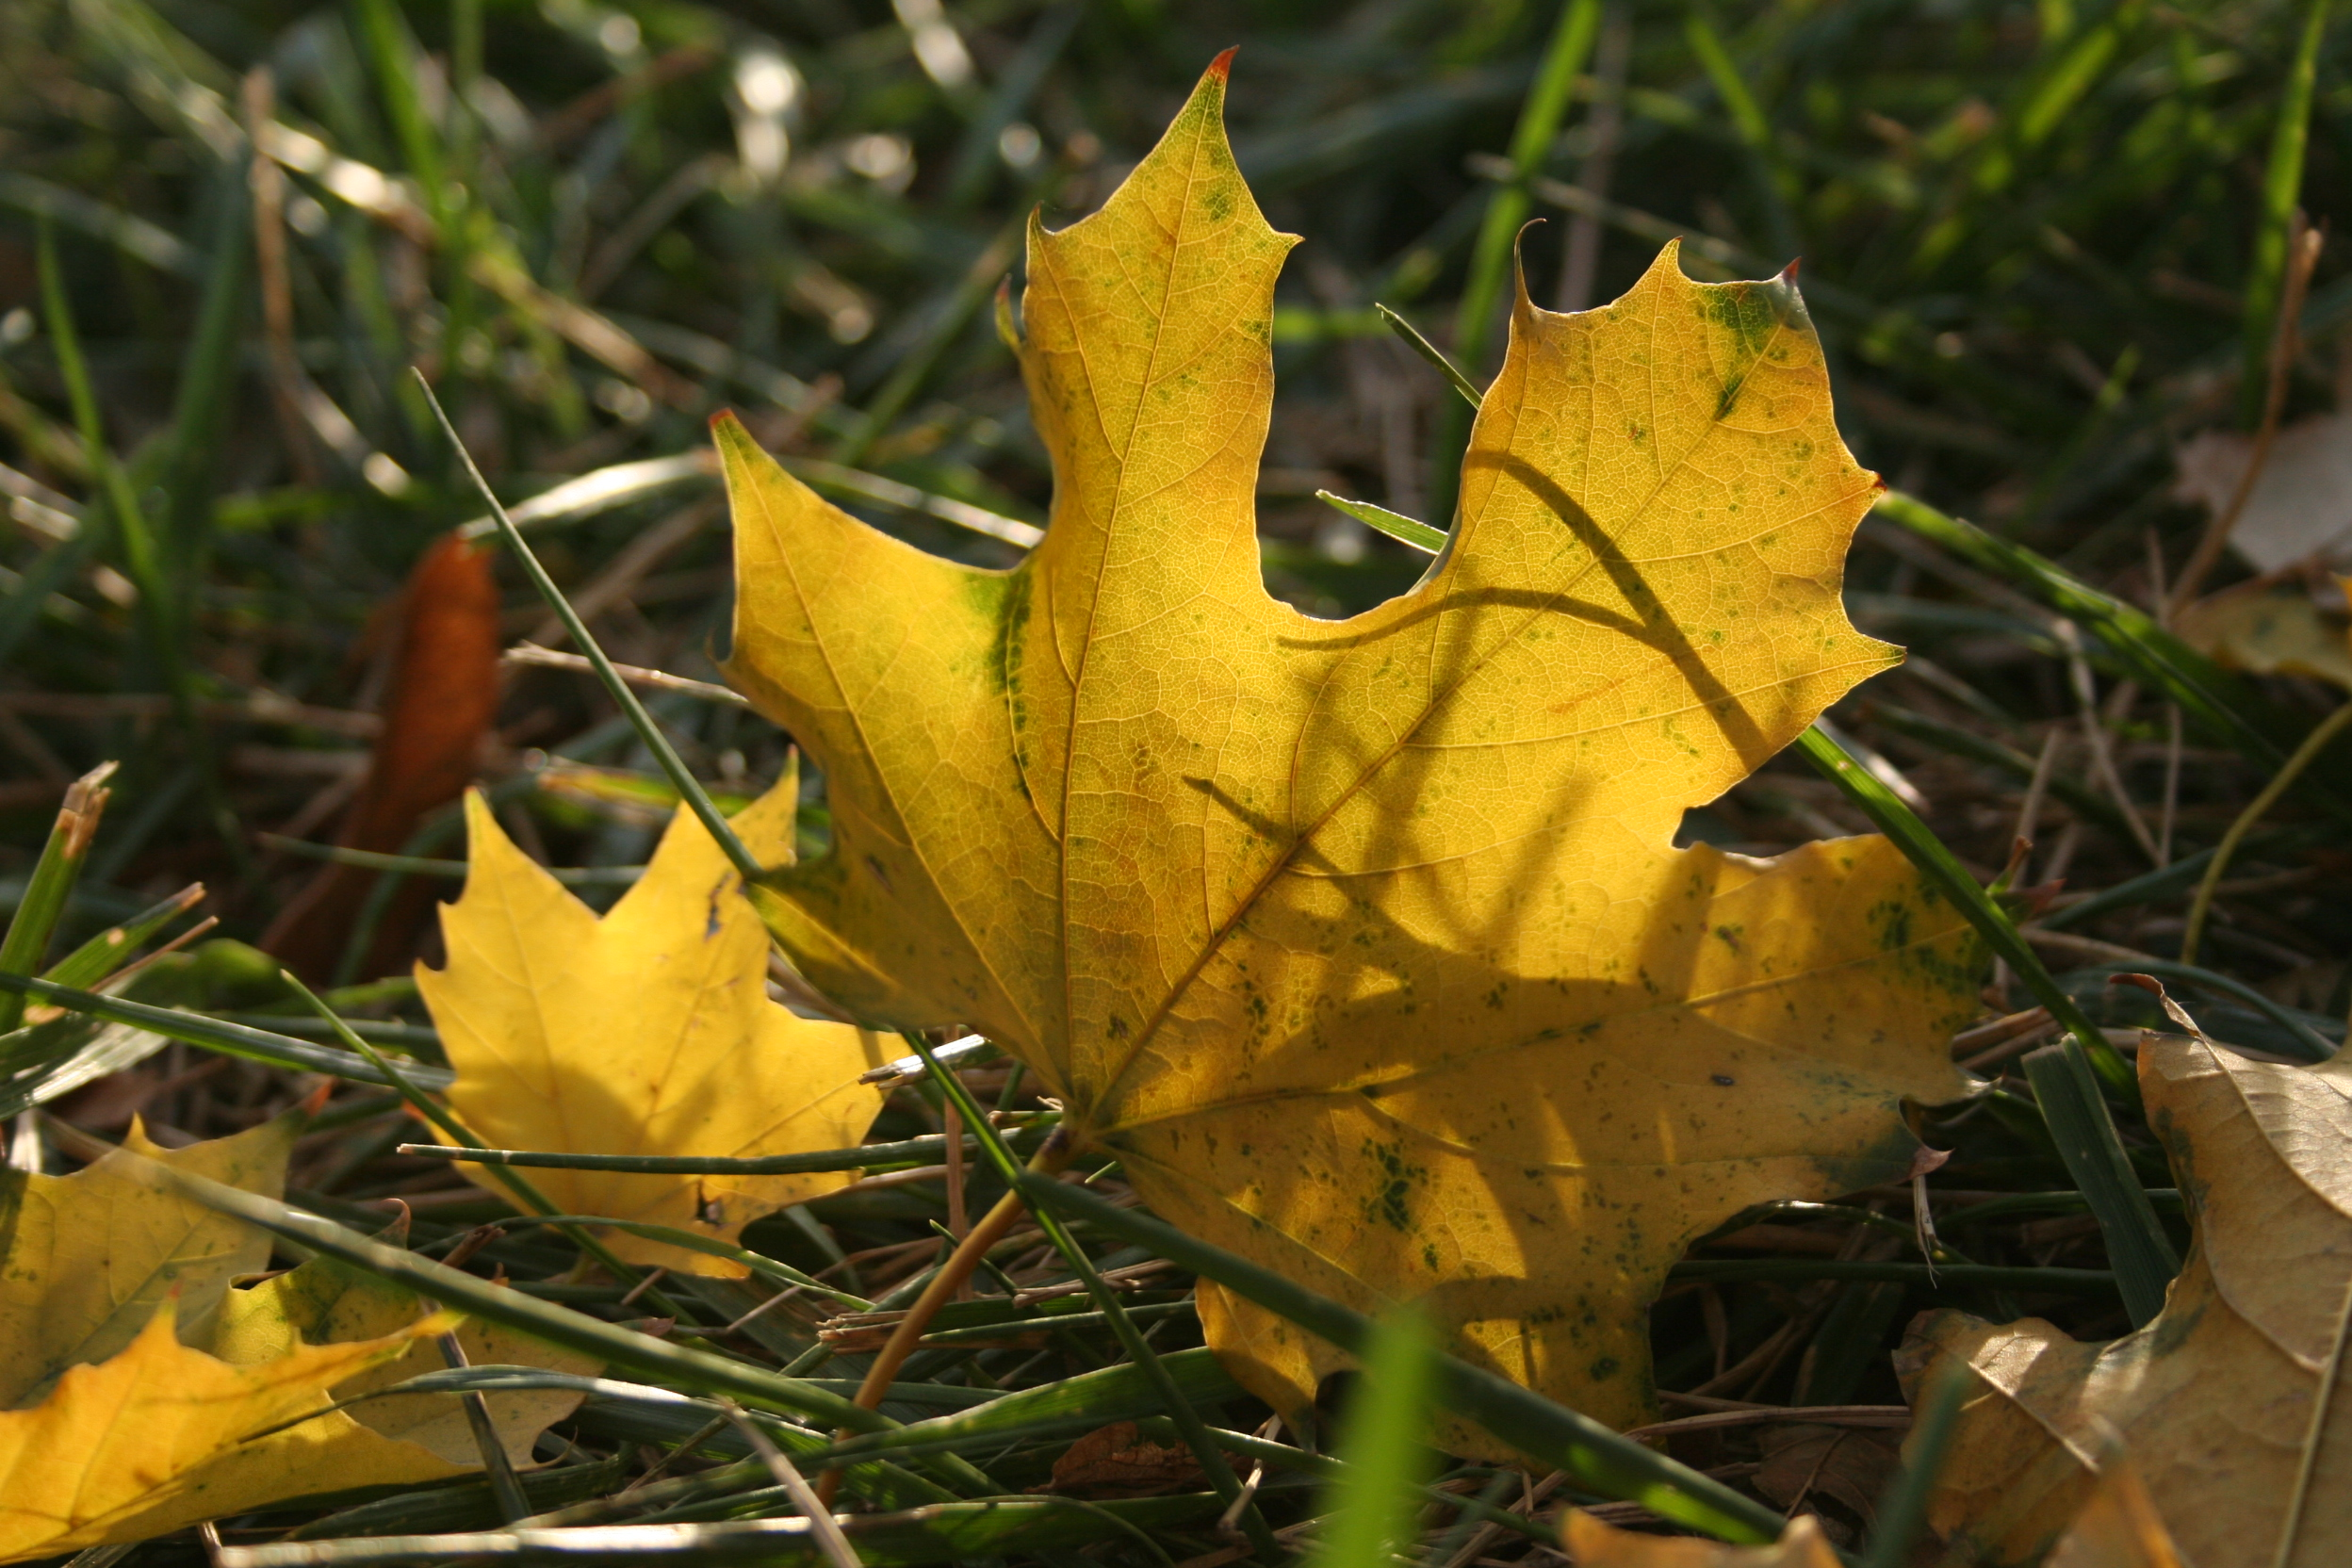 Norway Maple leaf in grass